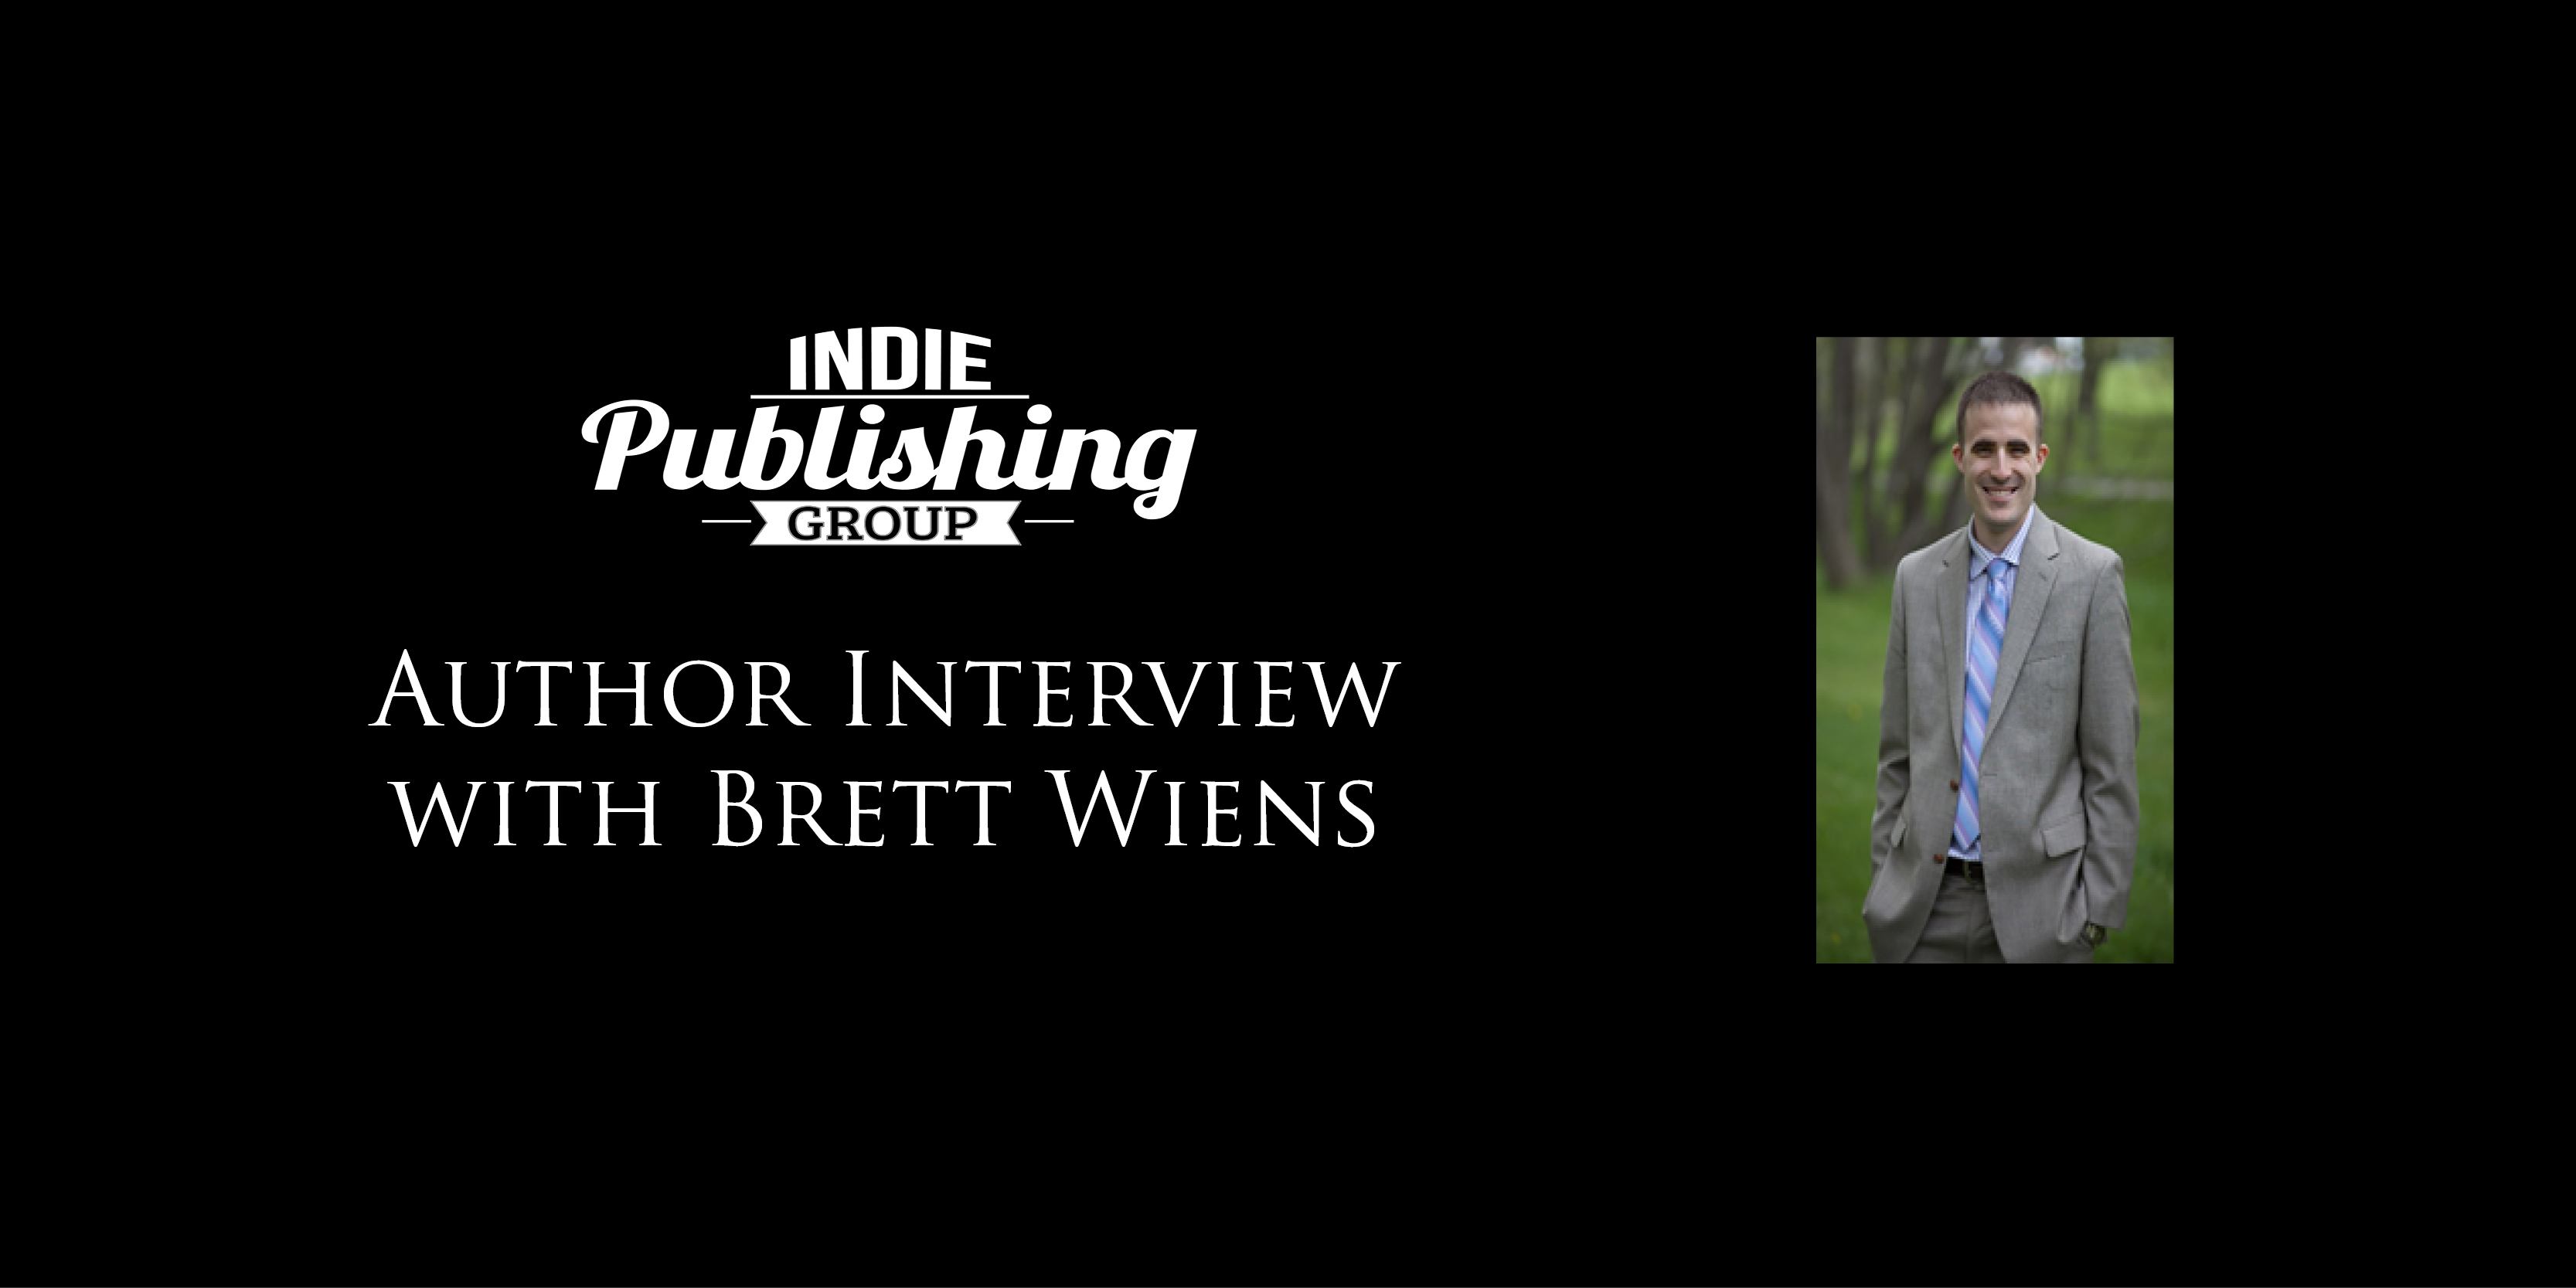 Author Interview with Brett Wiens